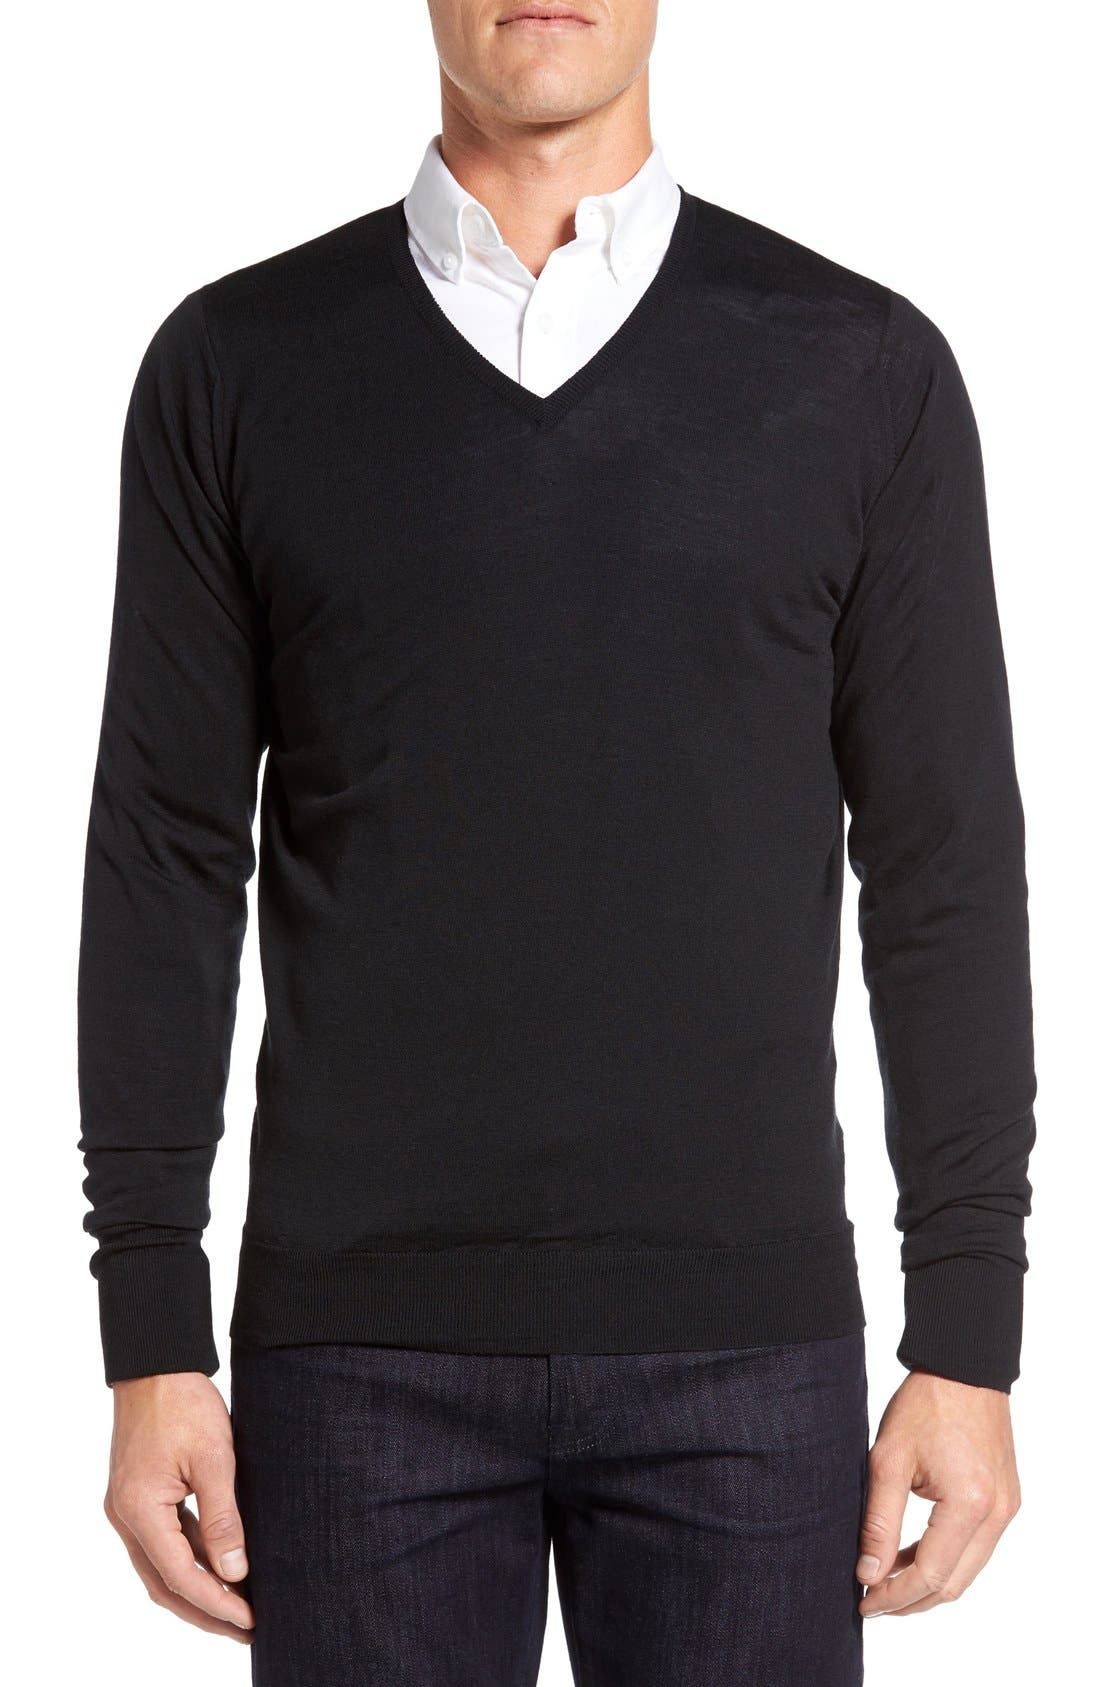 'Bobby' Easy Fit V Neck Wool Sweater,                             Main thumbnail 1, color,                             Black